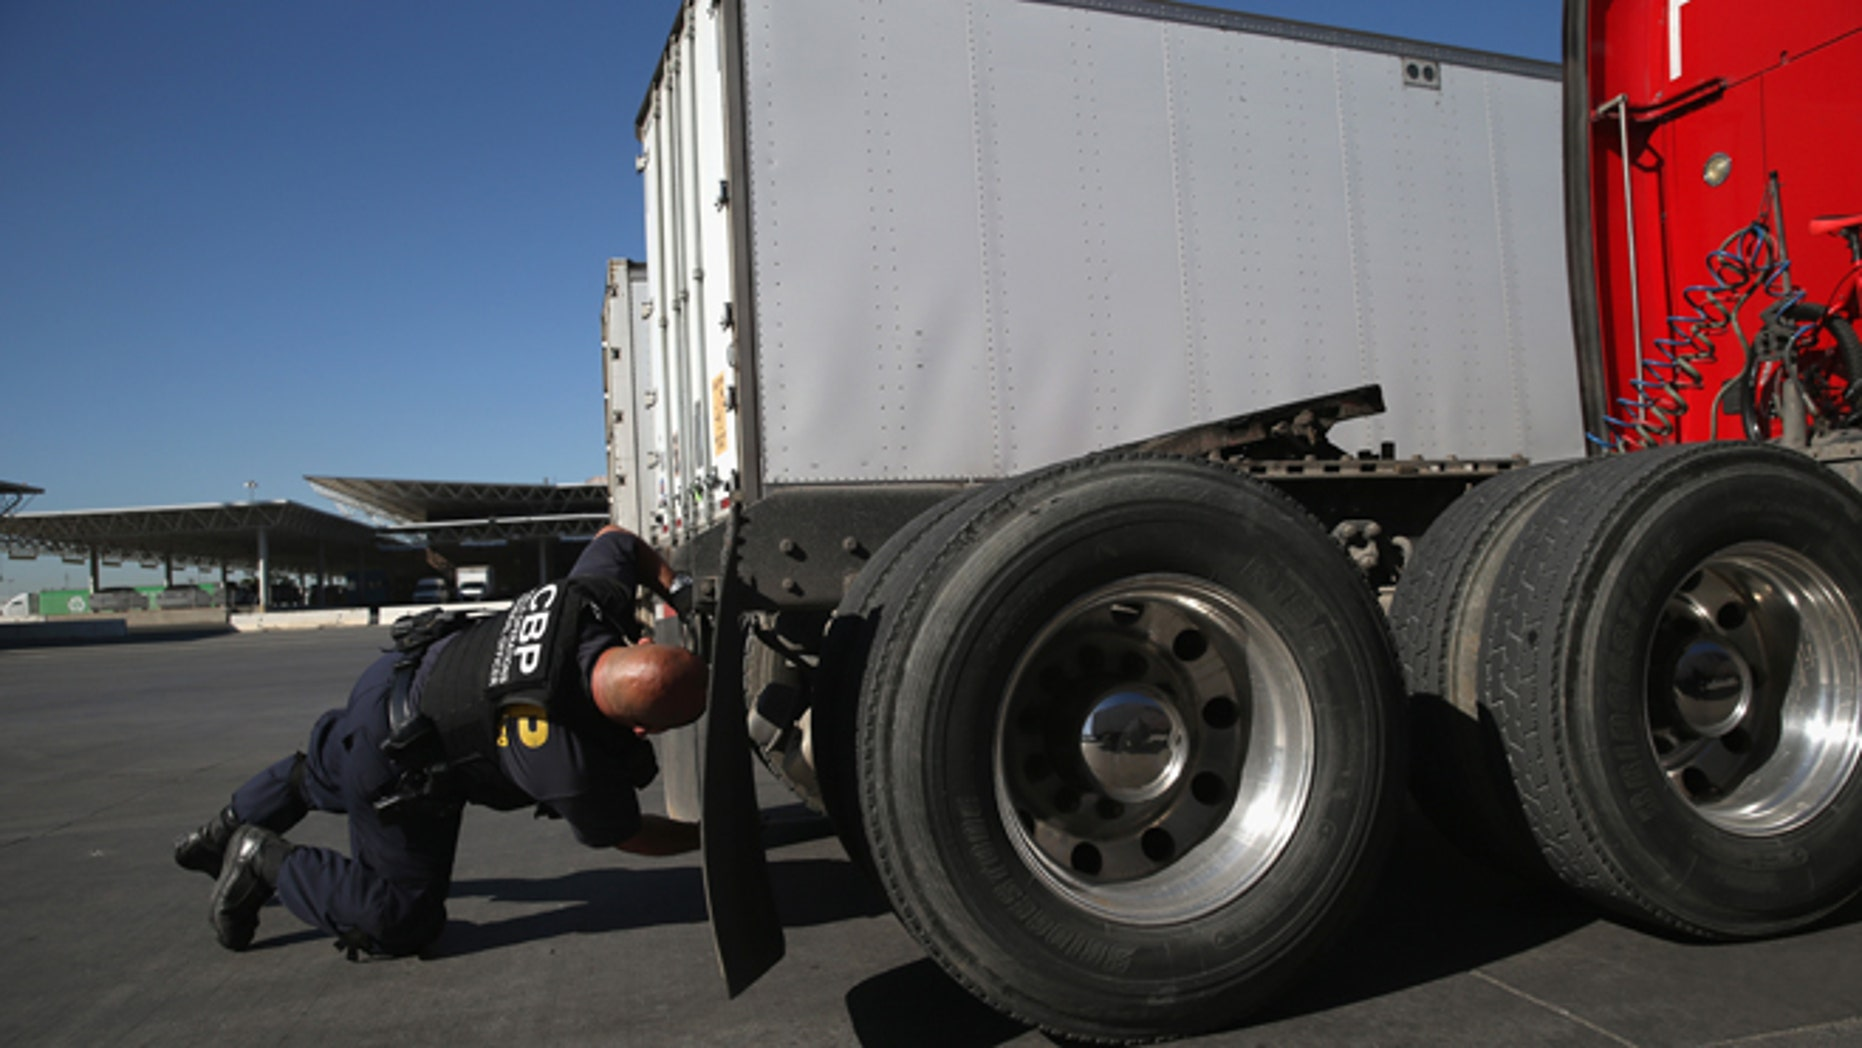 SAN DIEGO, CA - NOVEMBER 14:  A U.S. Customs and Border Protection inspects a truck coming from Mexico into the United States at the Otay Mesa port of entry on November 14, 2013 in San Diego, California. Otay Mesa is the second busiest cargo port in the southwestern United States, with some 750,000 trucks passing through annually. (Photo by John Moore/Getty Images)